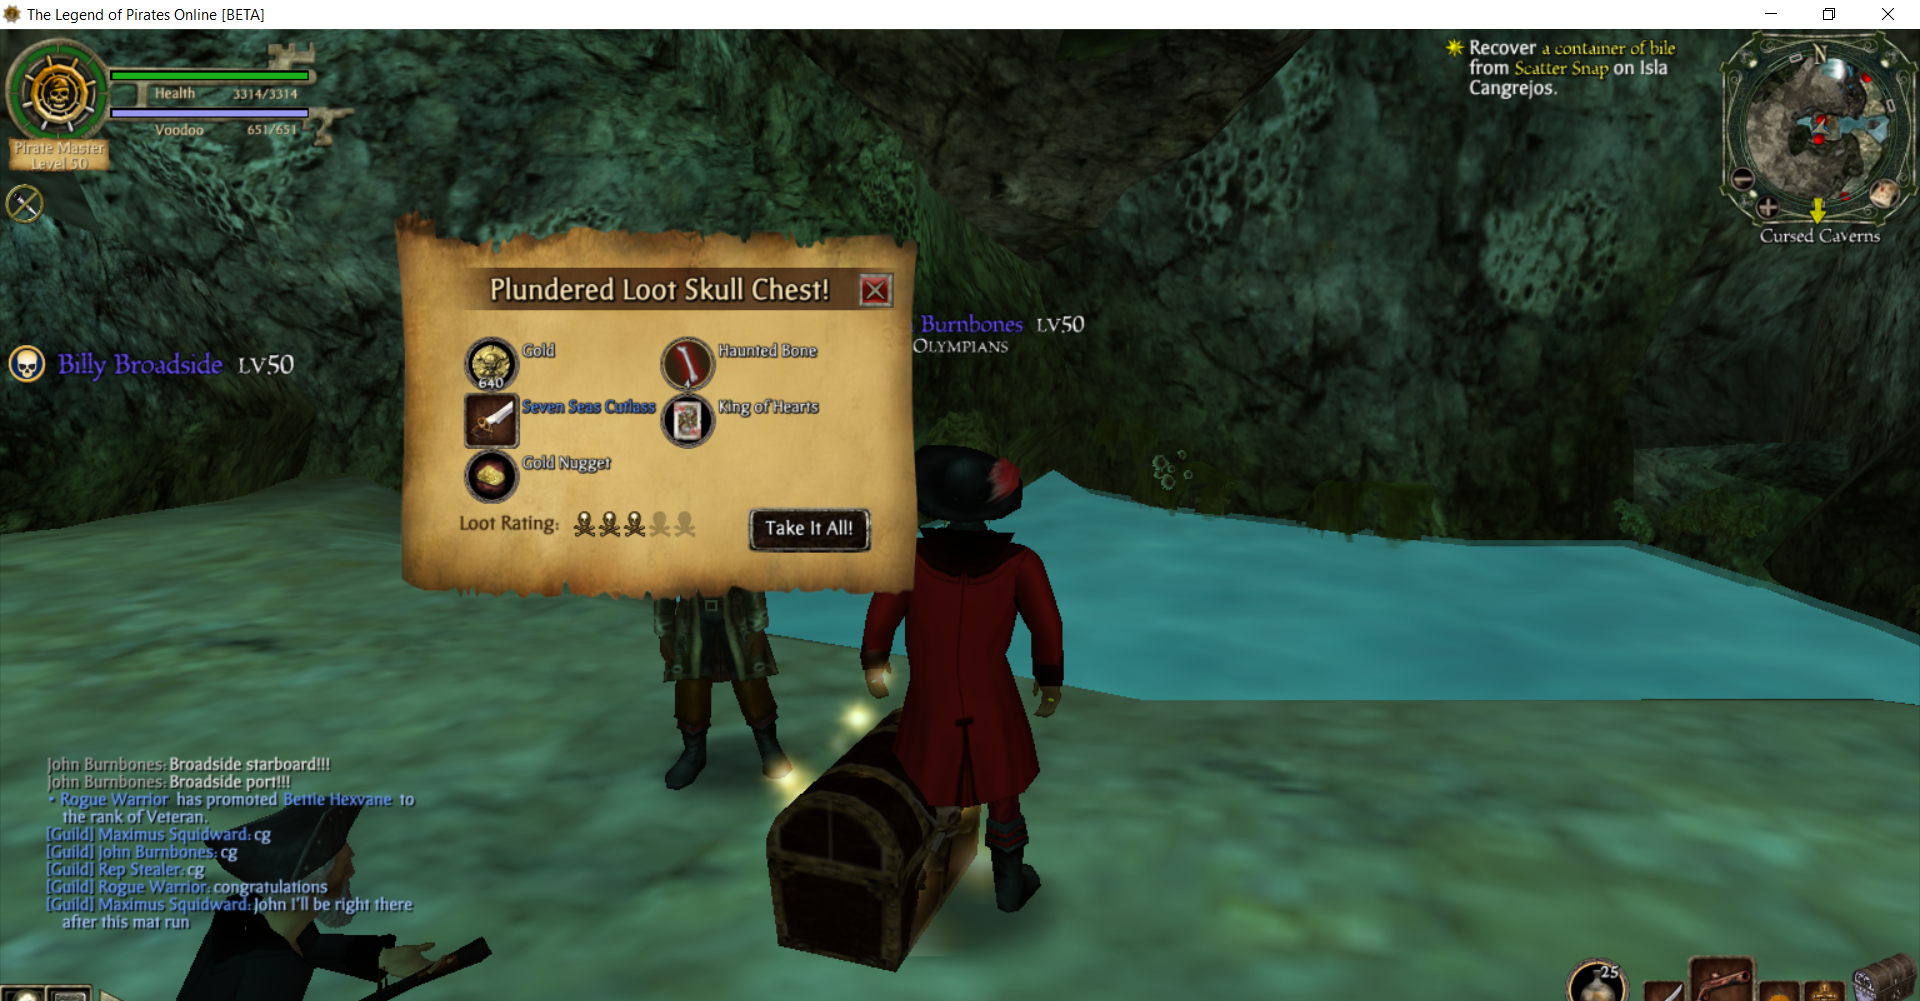 The Legend of Pirates Online [BETA] 11_16_2019 7_39_31 PM.png